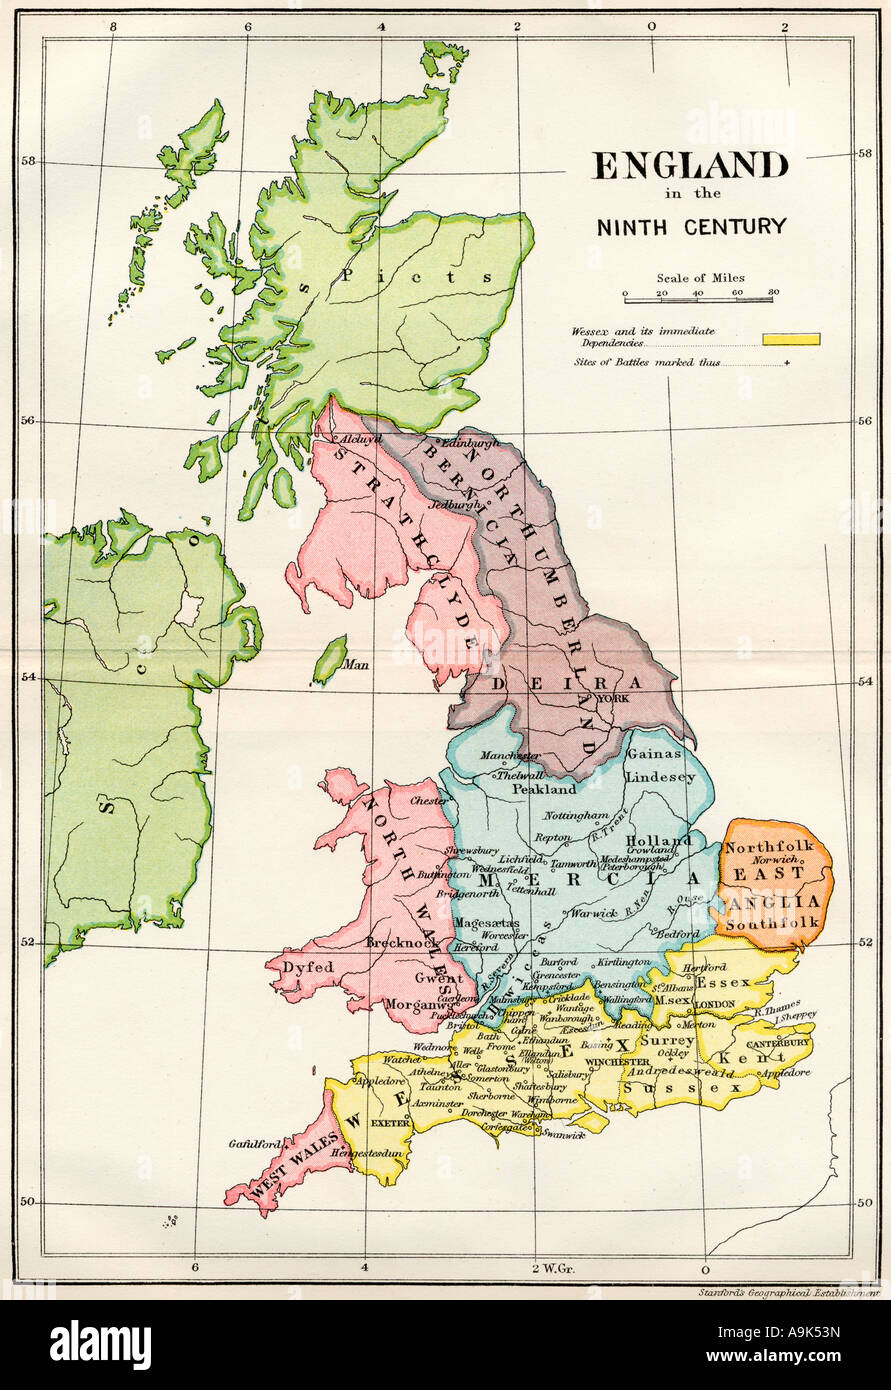 9th Century England Map Map of England in the Ninth Century Stock Photo: 12385784   Alamy